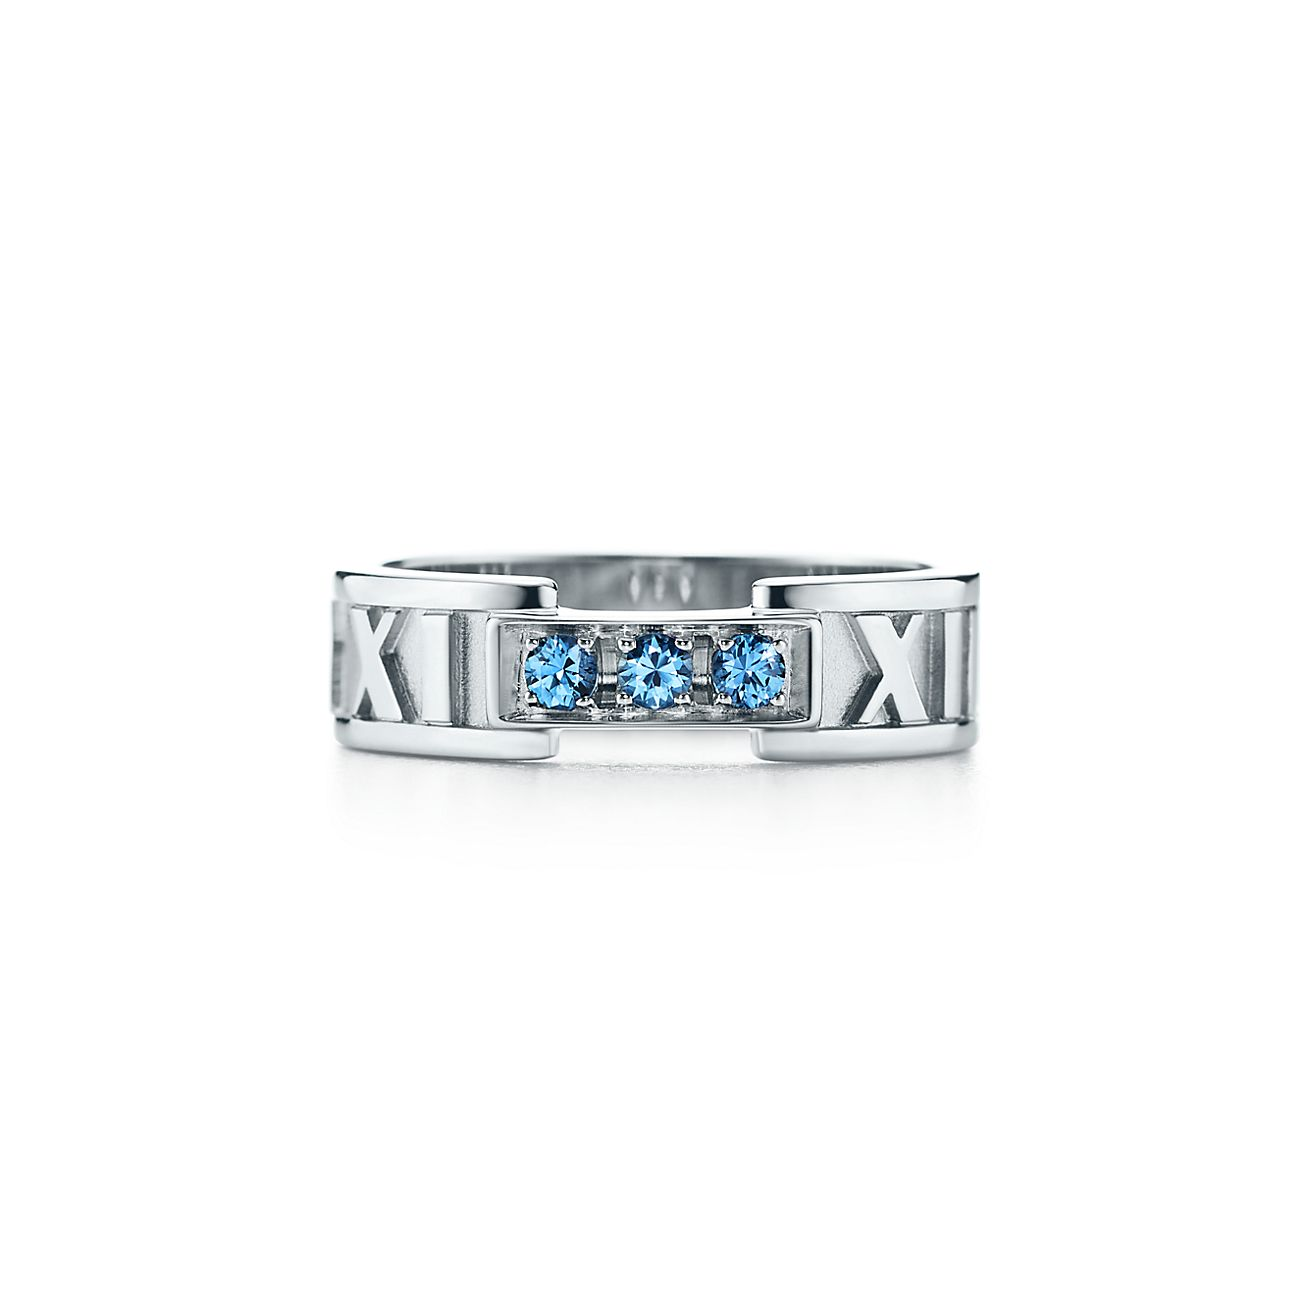 Tiffany 1837 narrow ring in 18k white gold with diamonds - Size 11 1/2 Tiffany & Co.